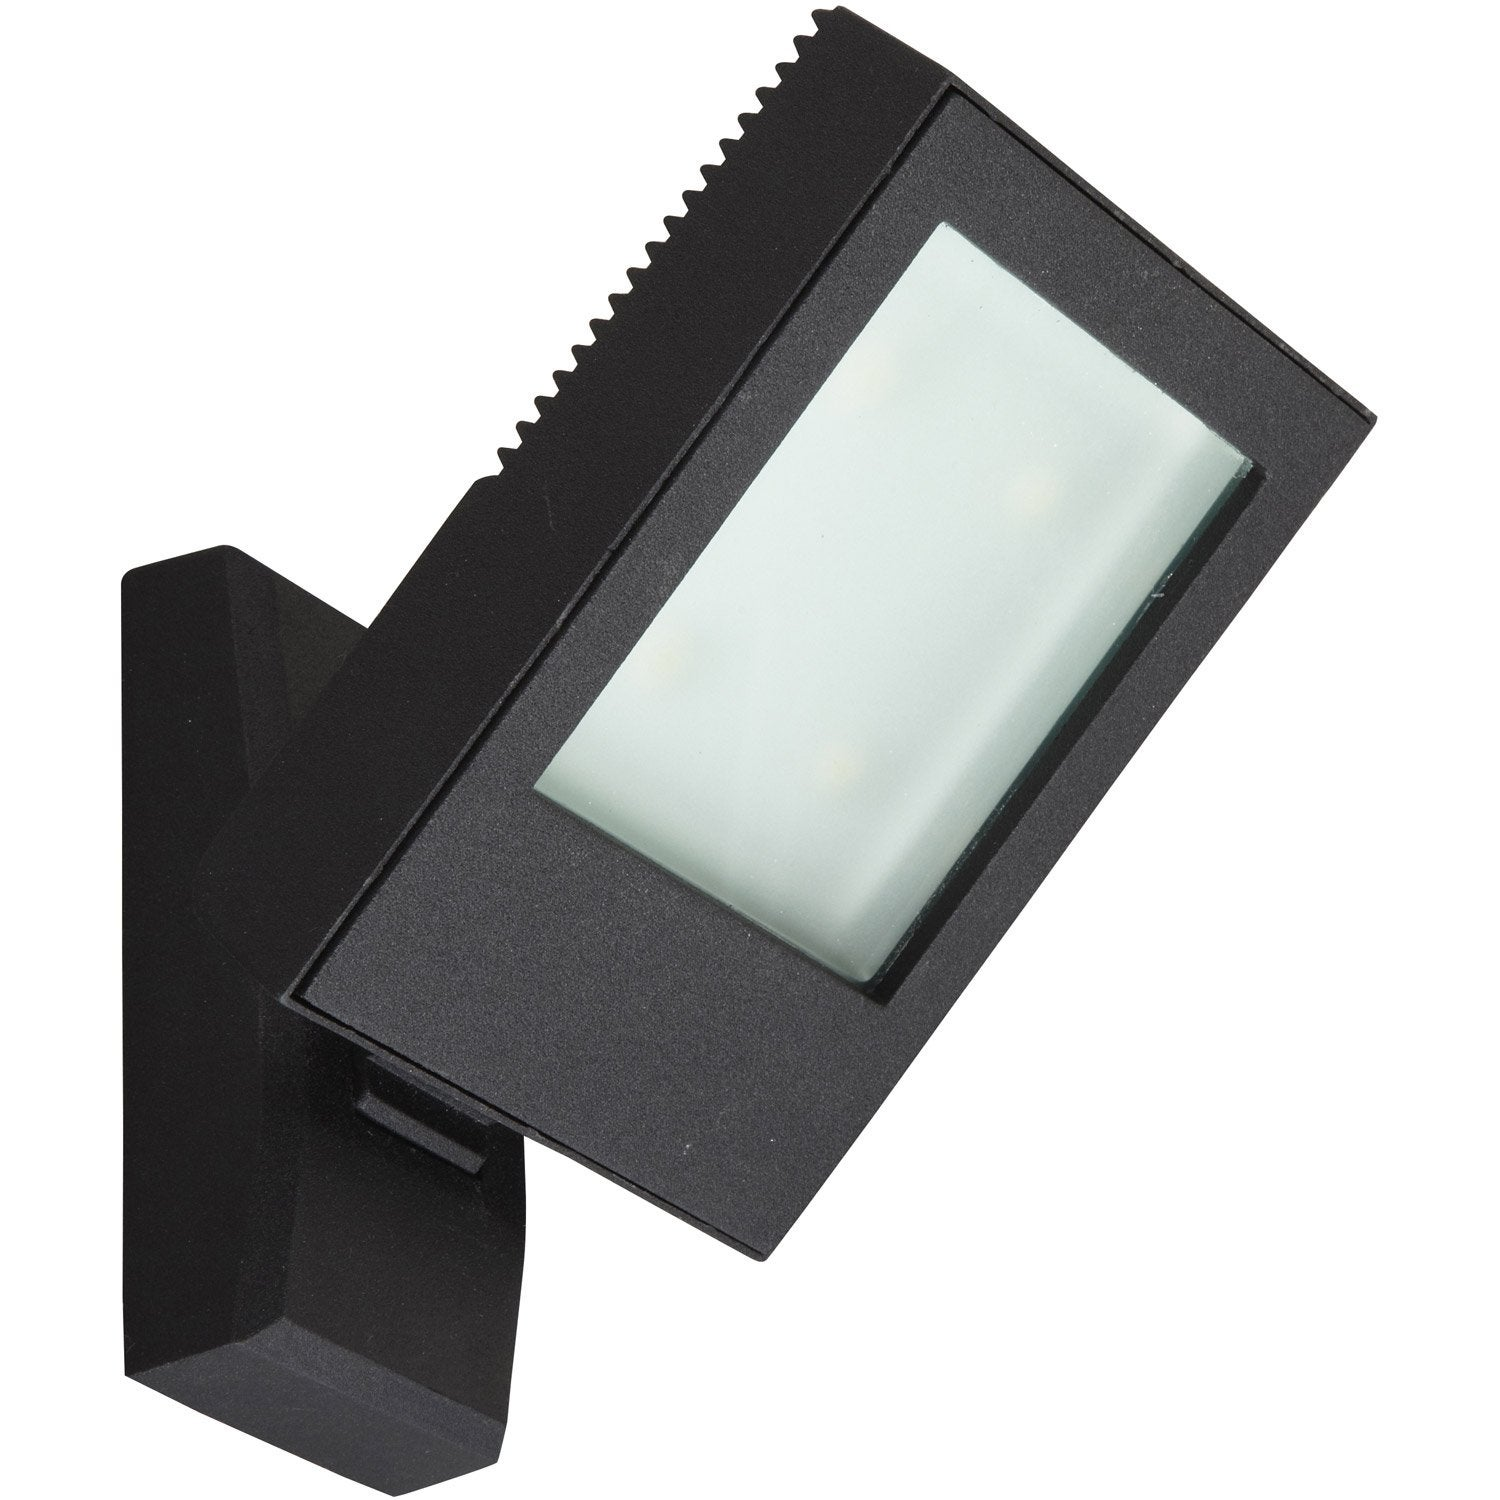 Applique montante ext rieure jade led int gr e noir for Applique murale exterieur leroy merlin